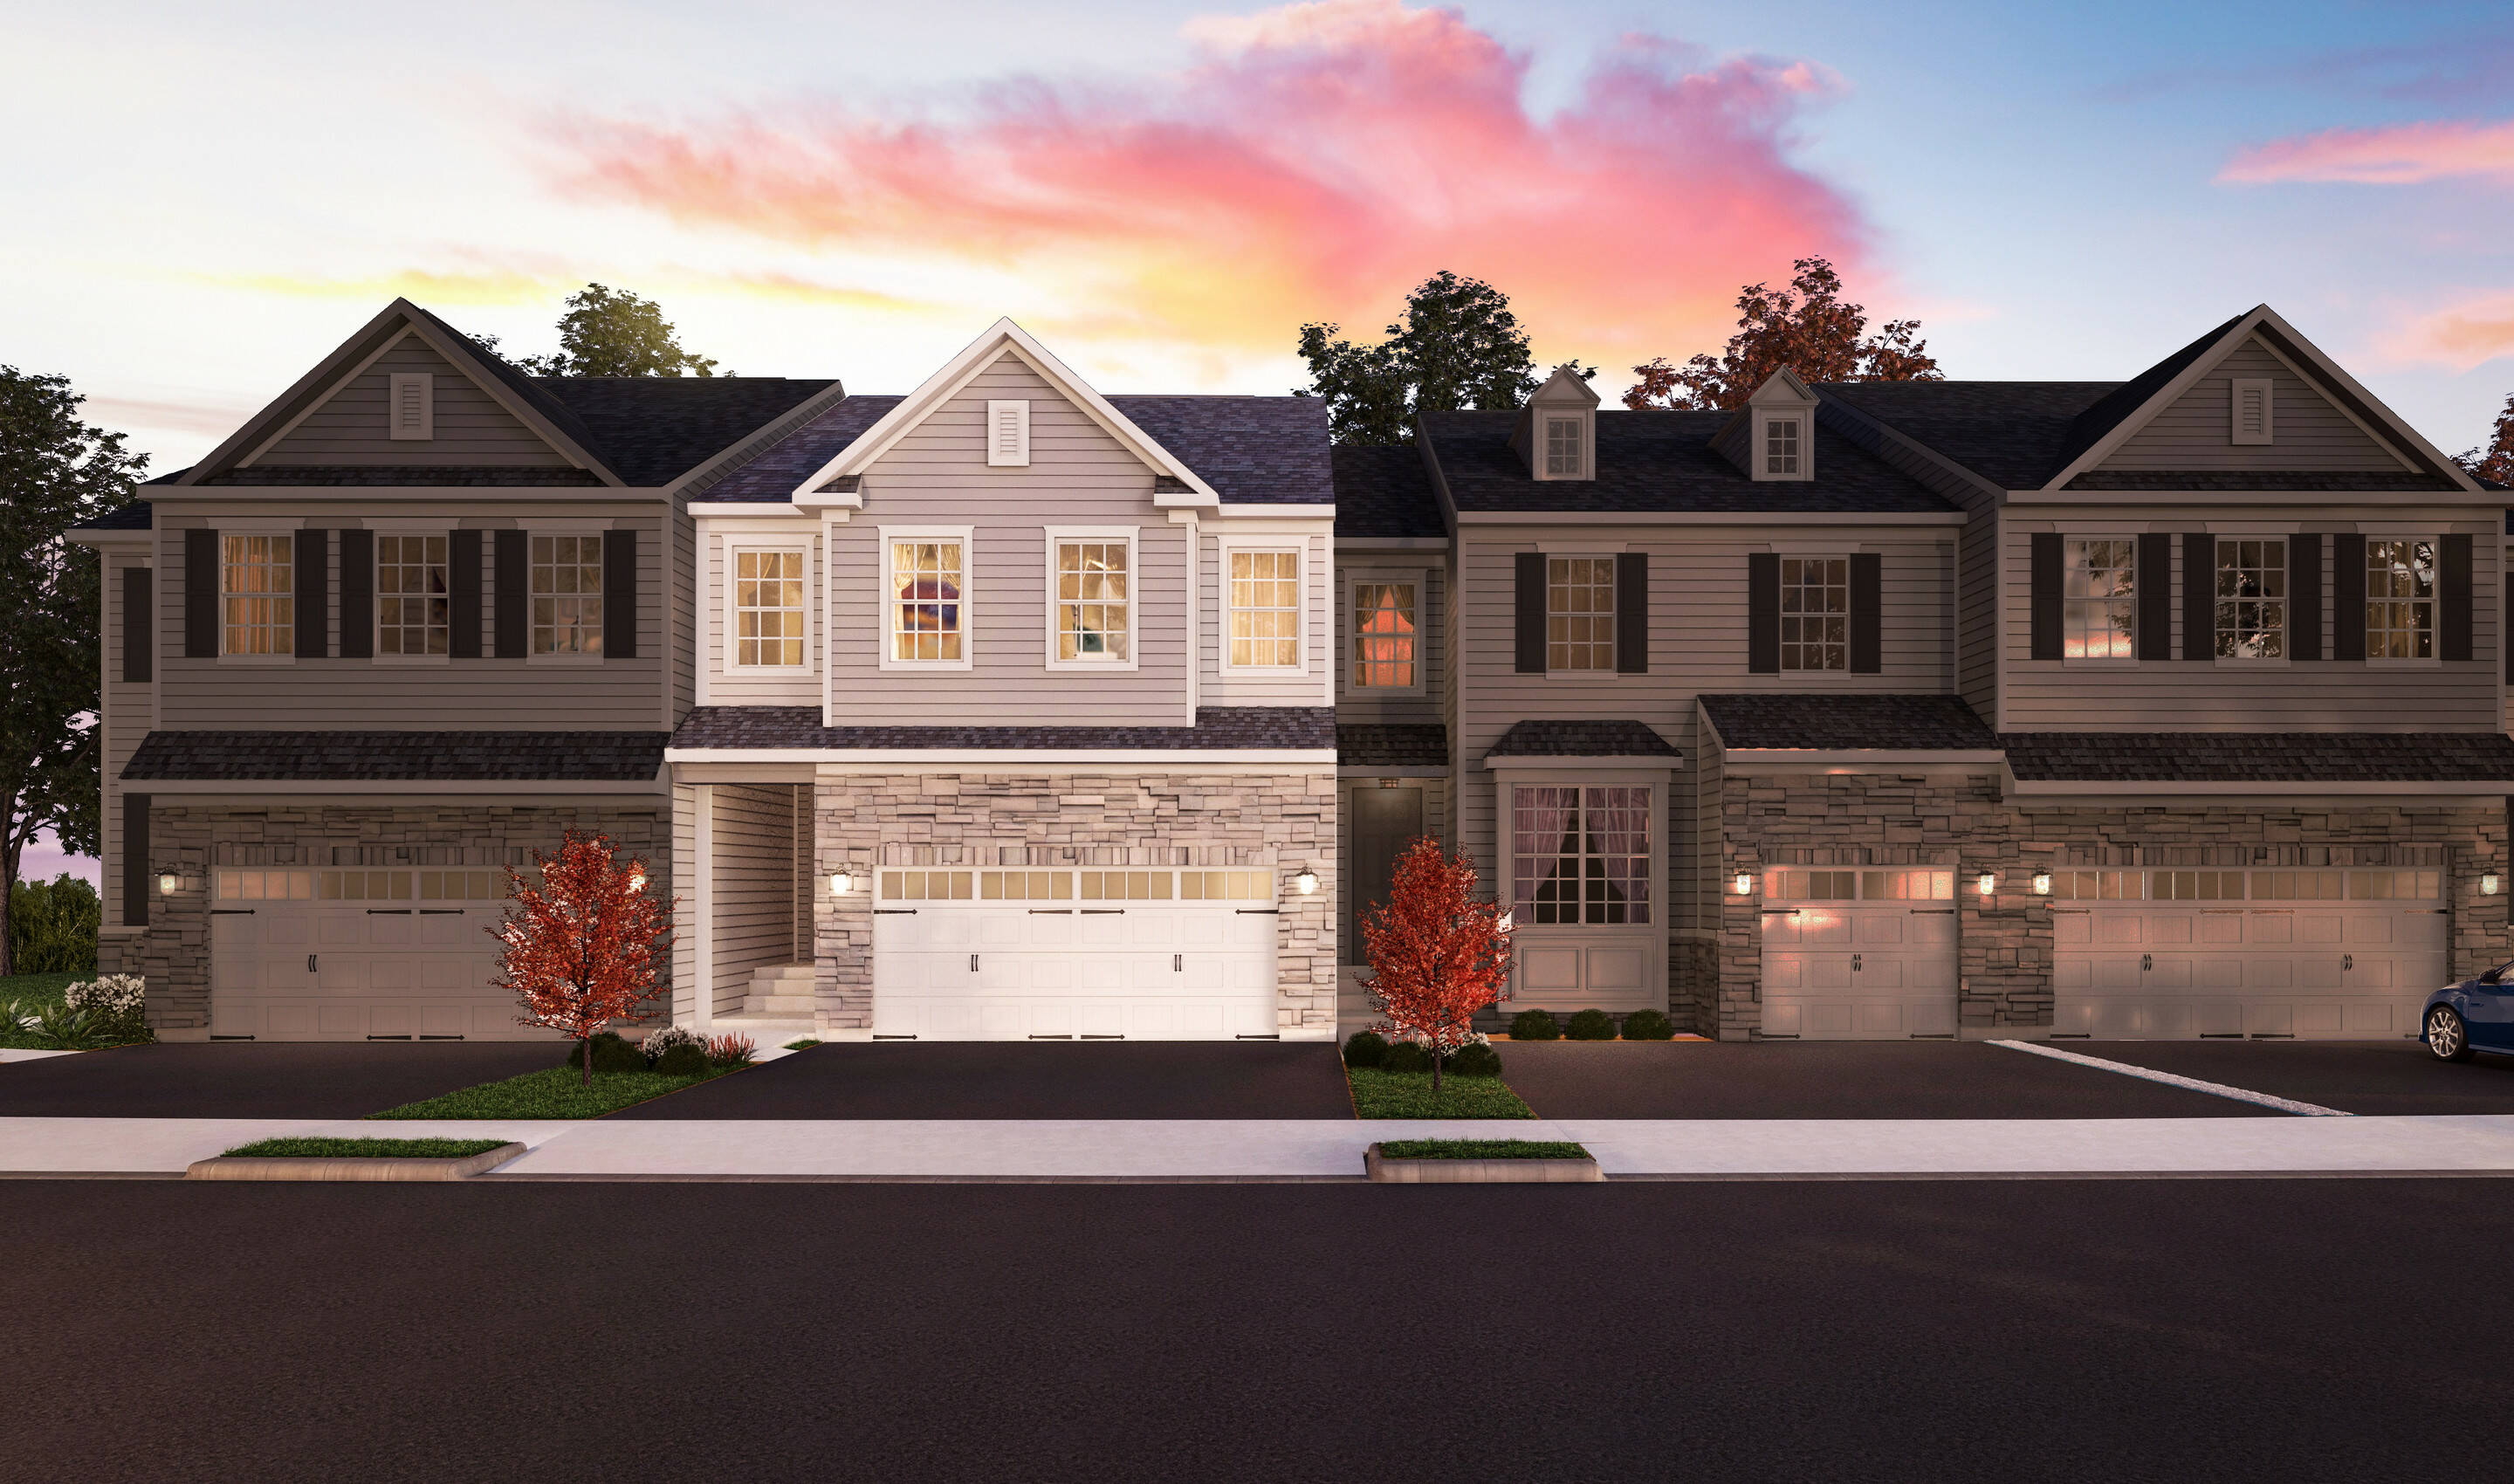 68498_Villages at Country View_Davidson_Shadowed Renderings